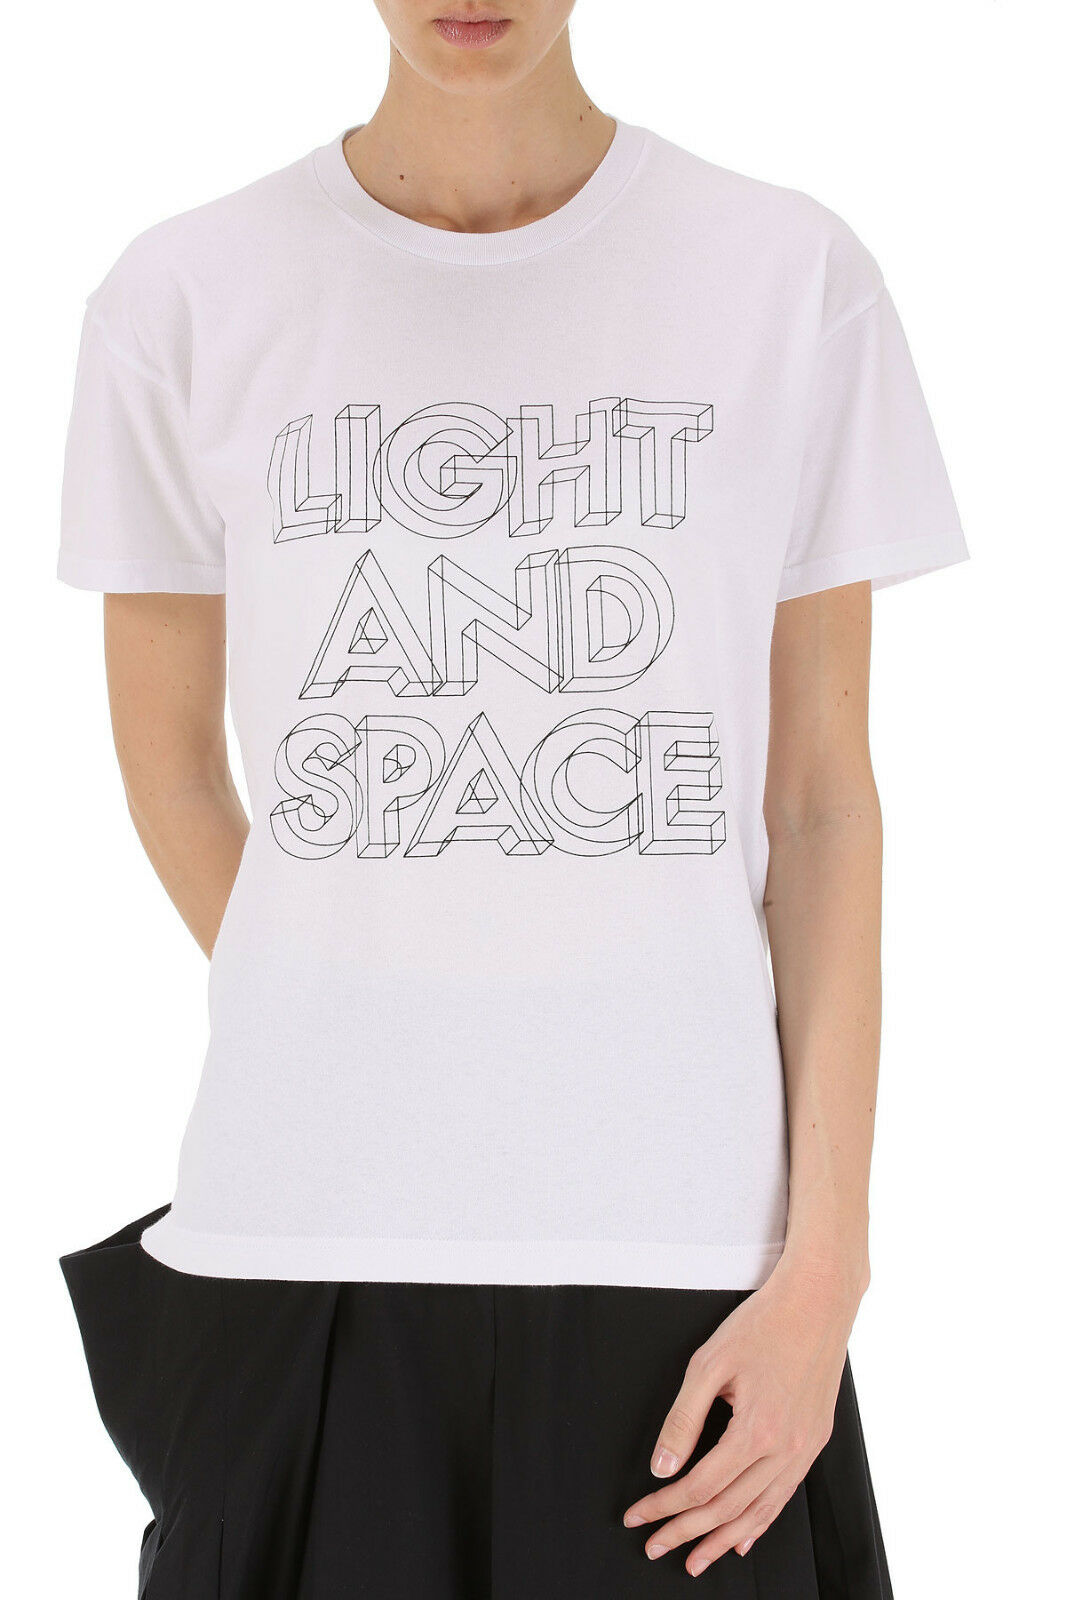 Marc by Marc Jacobs T-shirt, light and space t-shirt